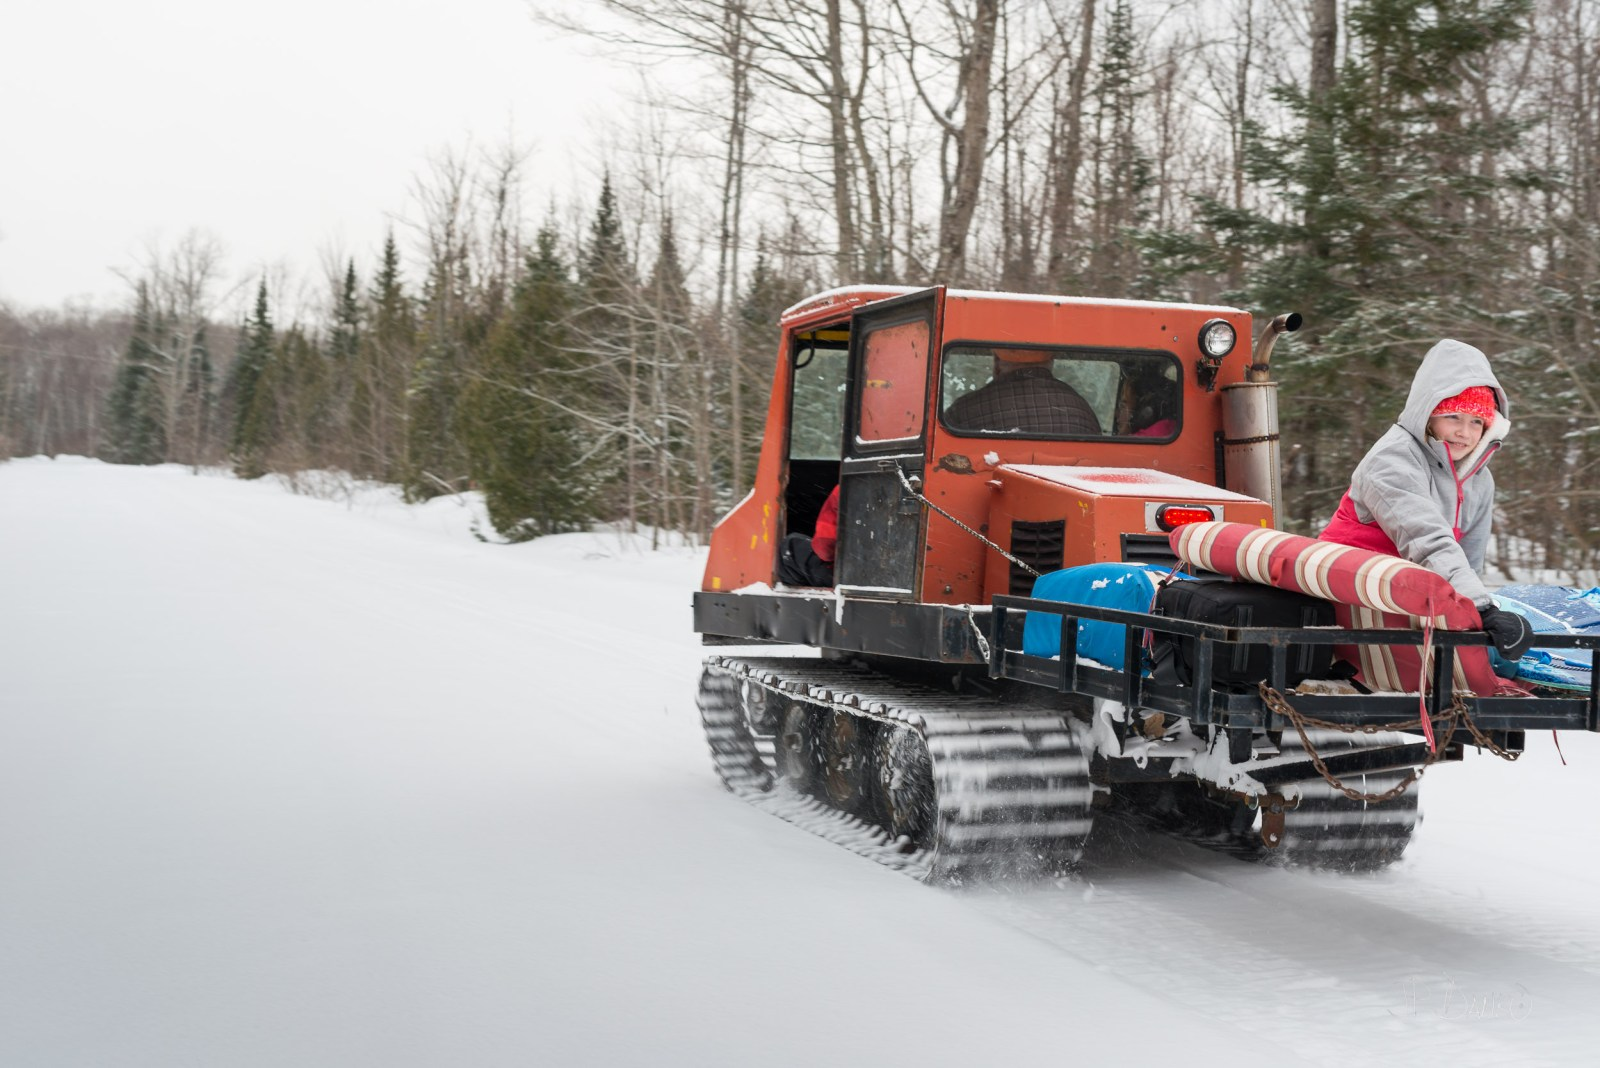 Girl in winter jacket sits in the bed of antique snow groomer moving through Muskoka forest